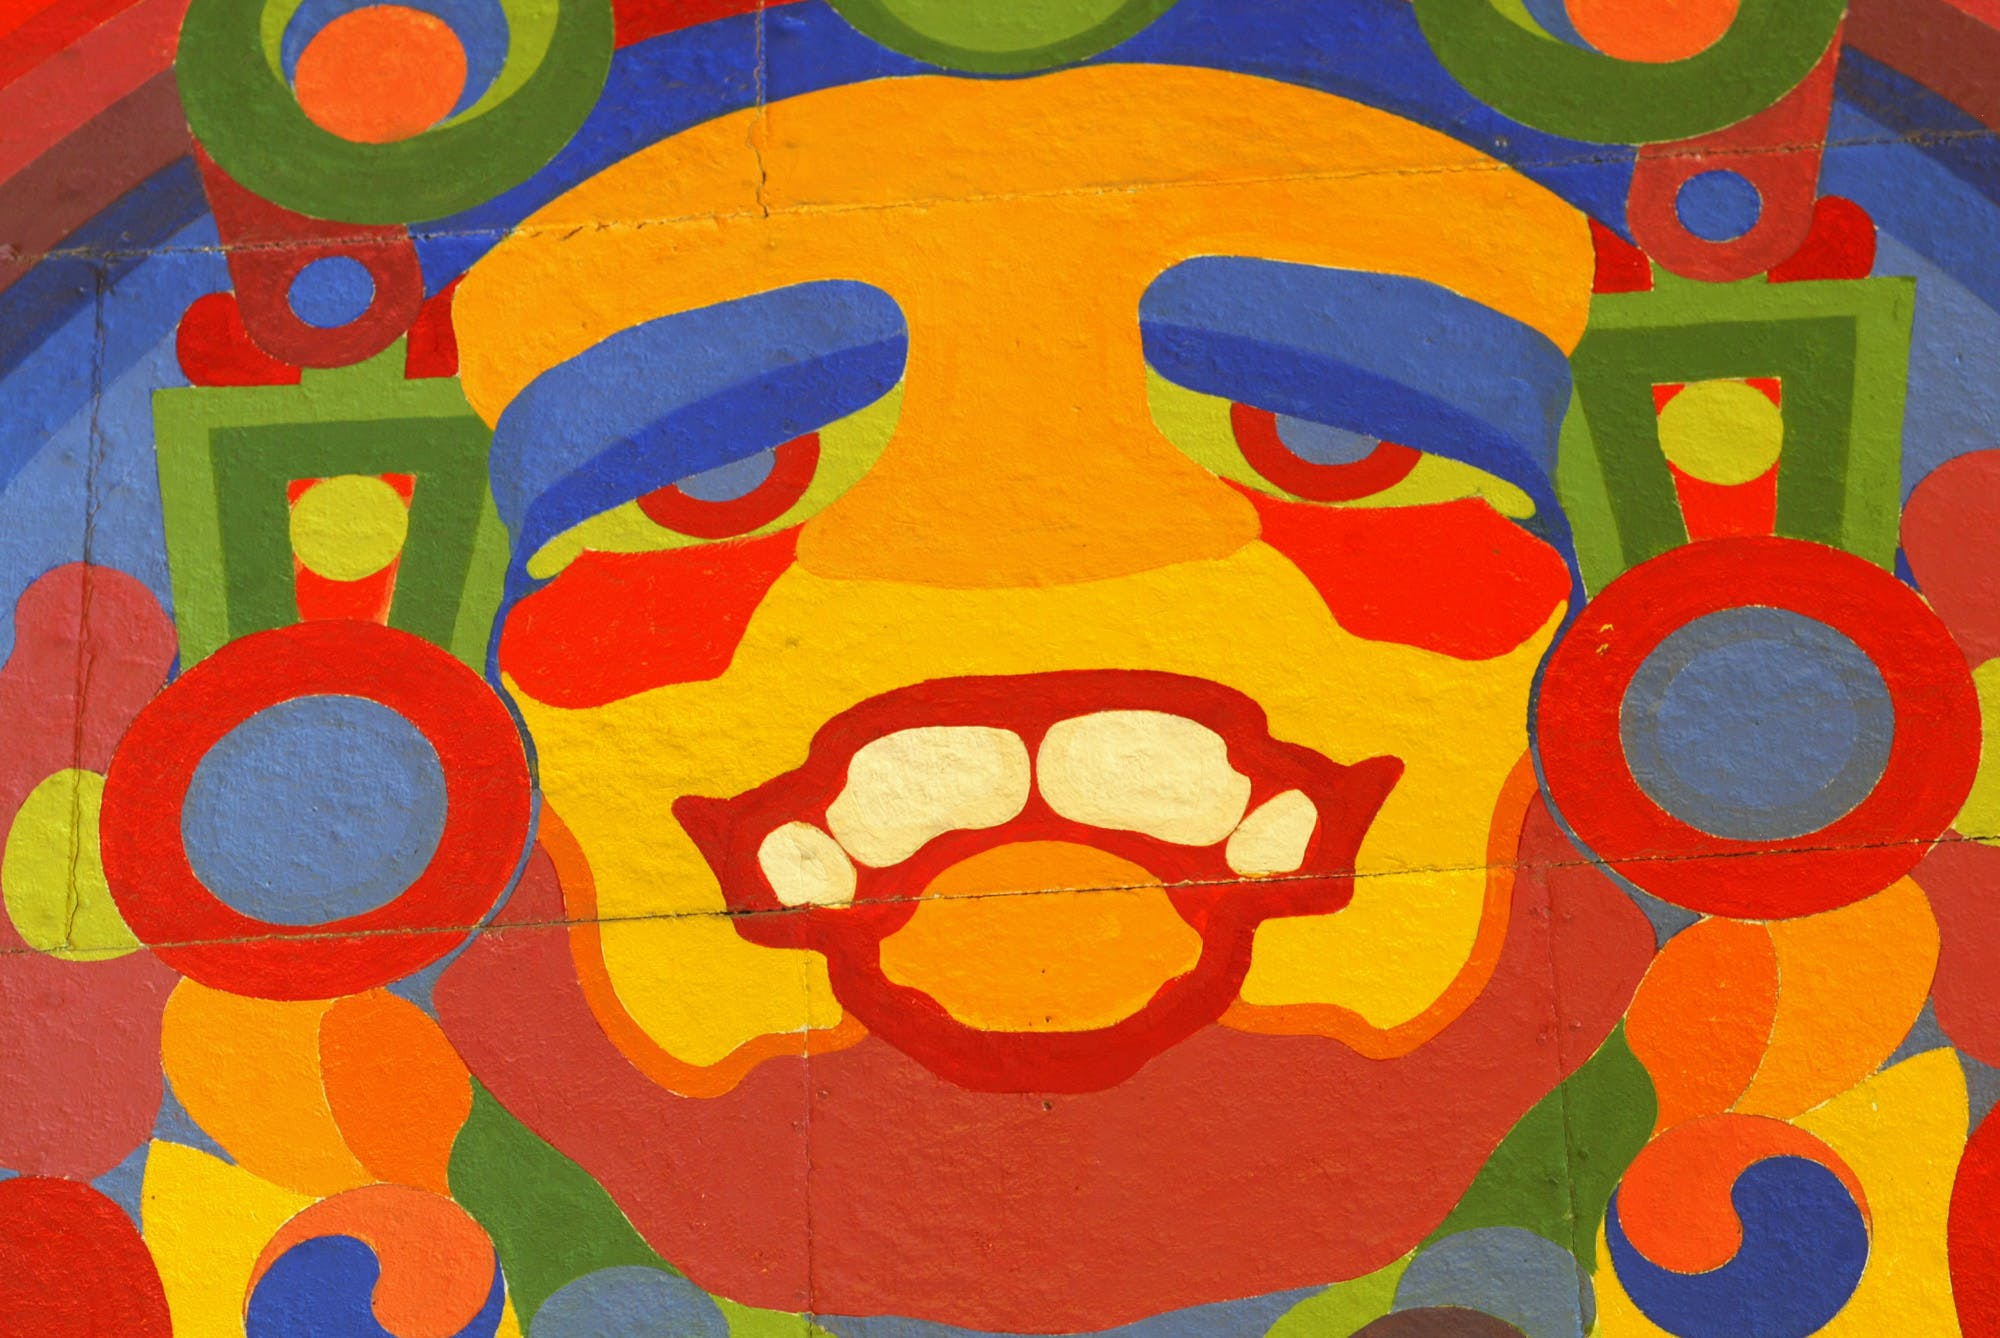 Detail on the mural of the trickster spirit Nanabohzo.